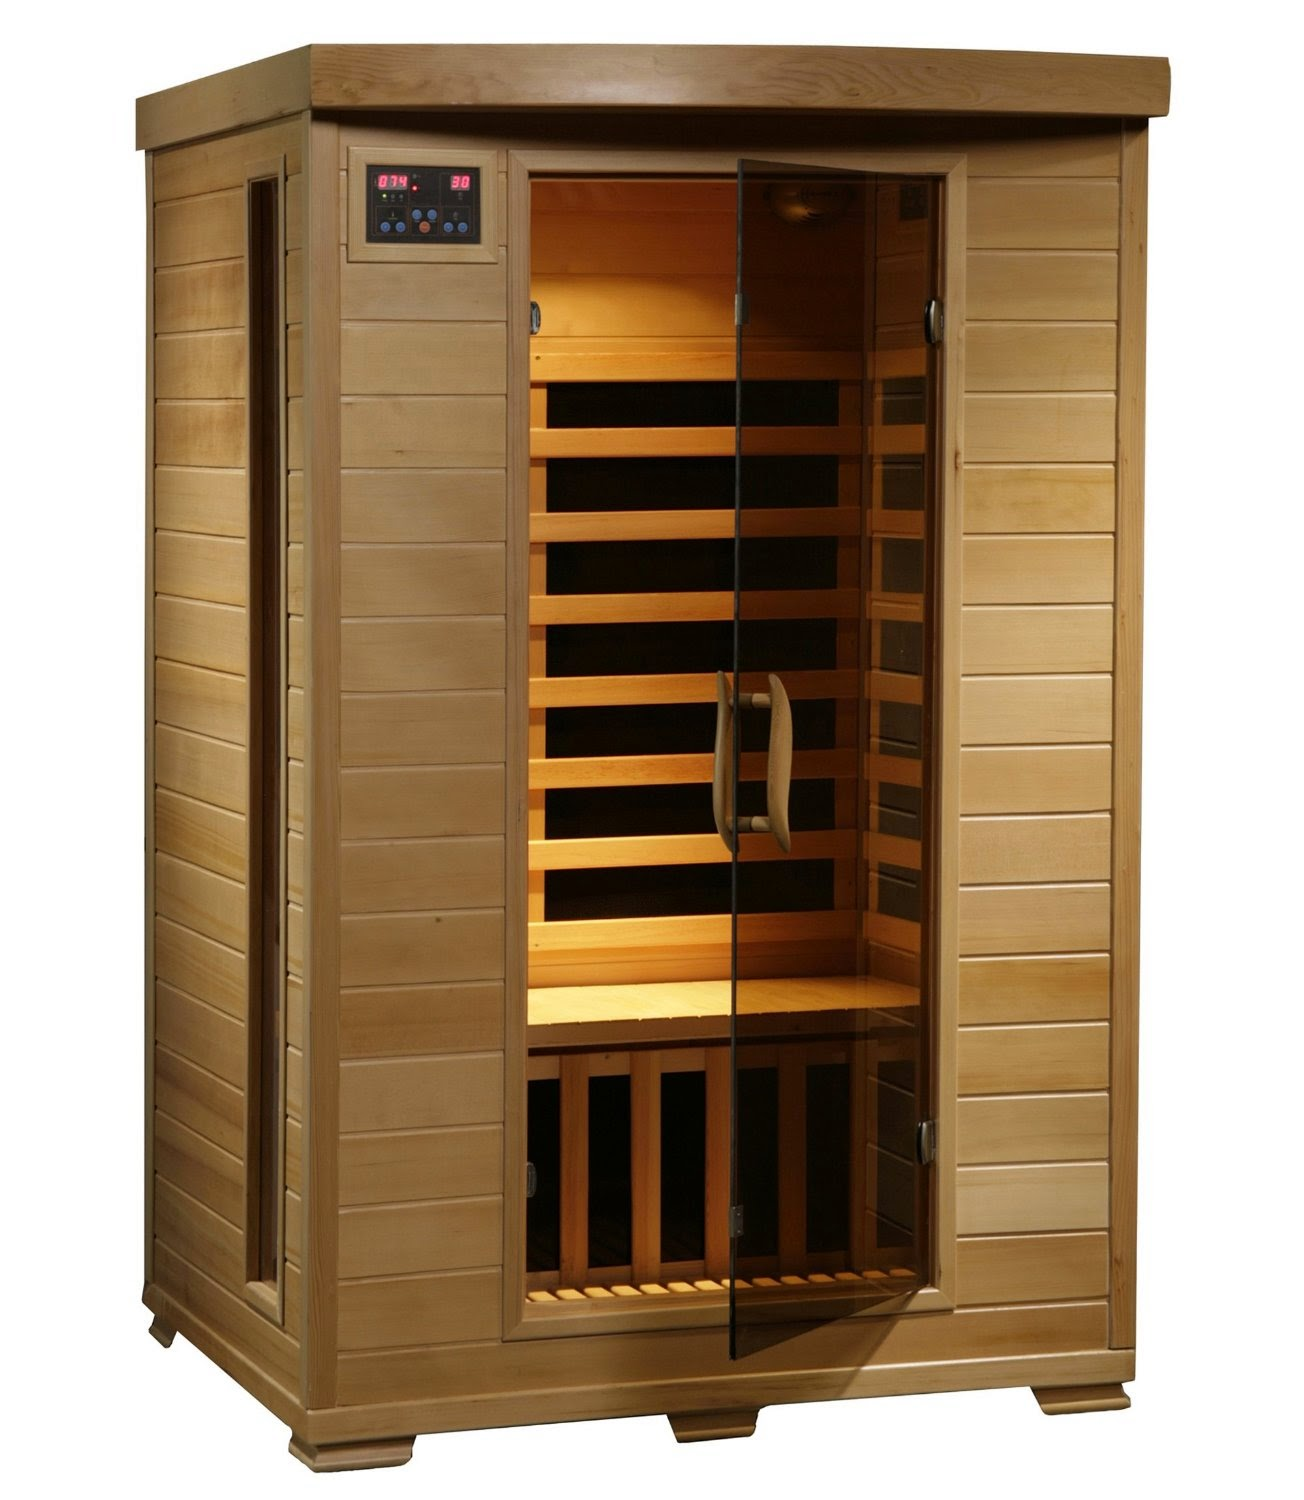 Radiant Saunas BSA2409 2-Person Hemlock Infrared Sauna with 6 Carbon Heaters, review, low cost home sauna, tongue and groove construction with quick buckle assembly, heats up to 141 degrees F, tinted tempered safety glass door